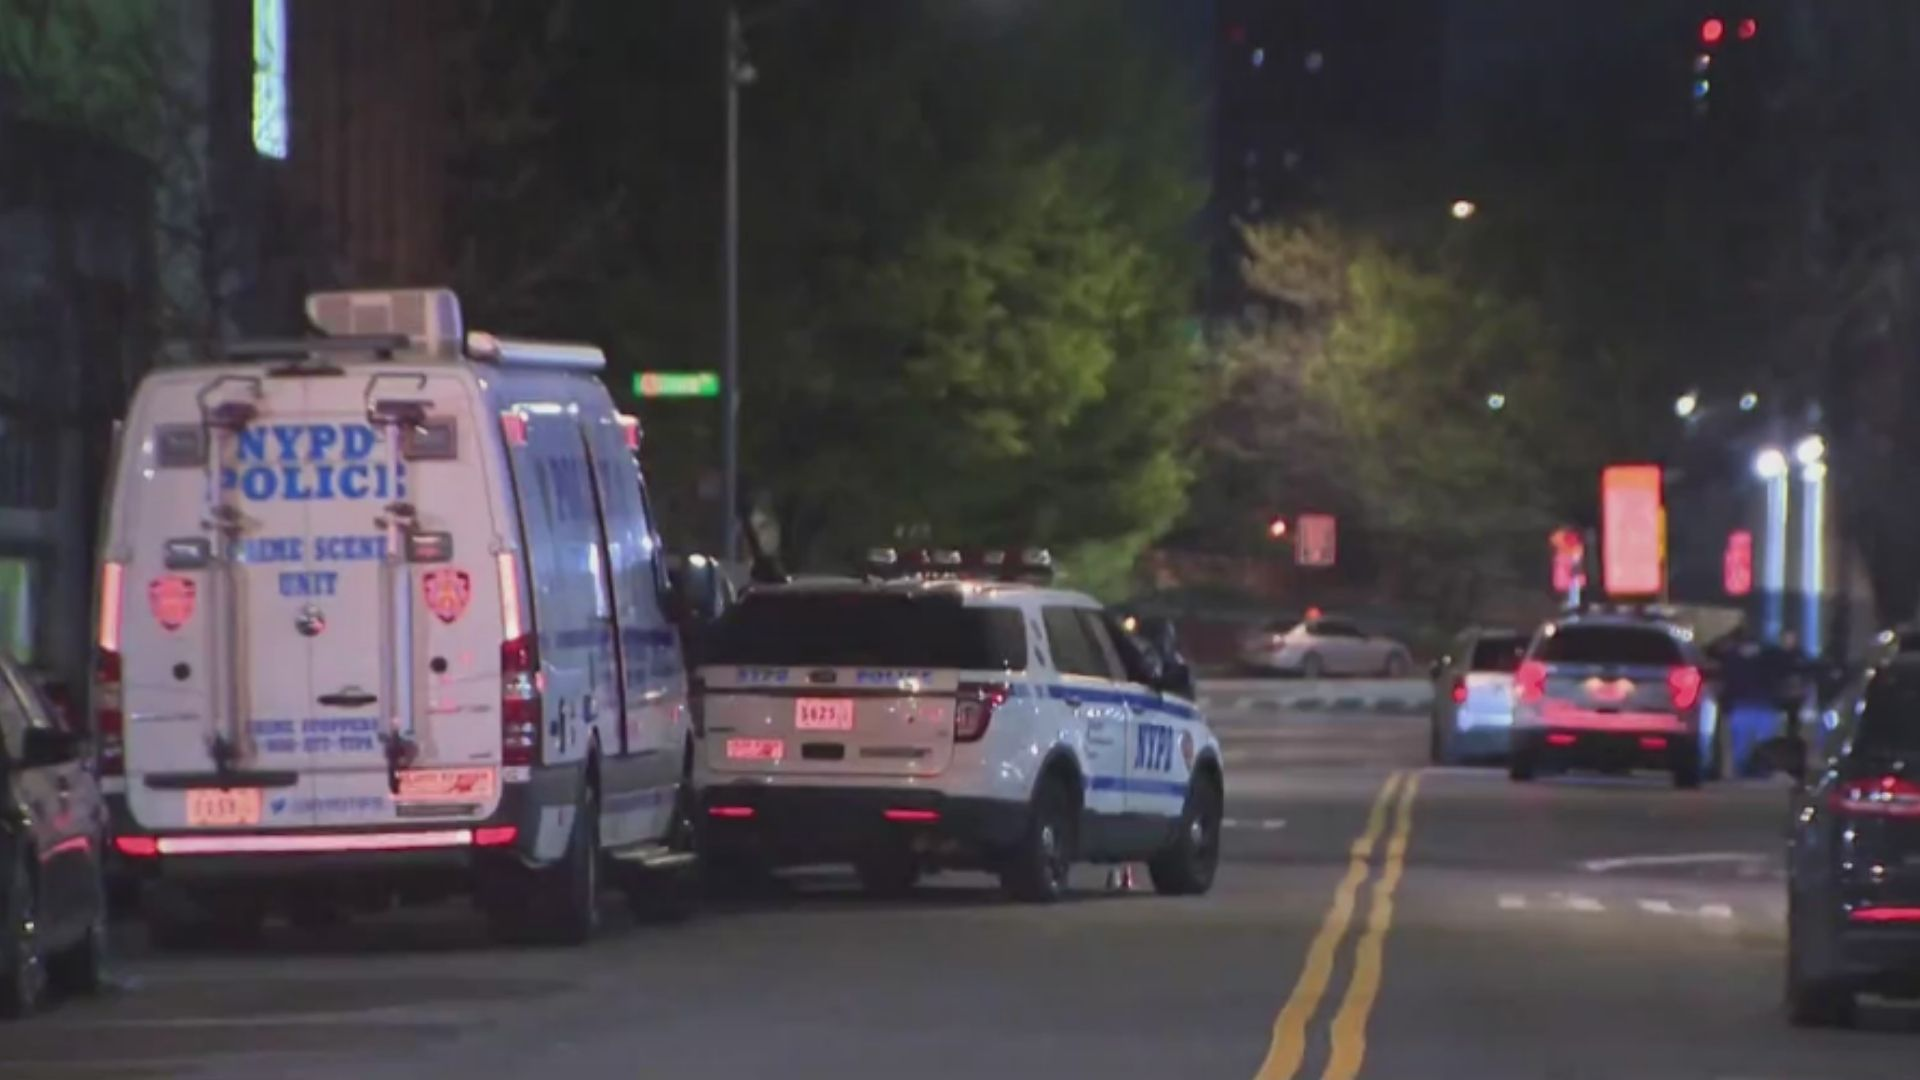 Police on the scene after a shootout between officers and multiple suspects late Monday night, April 19, 2021, according to the NYPD. (PIX11 News)